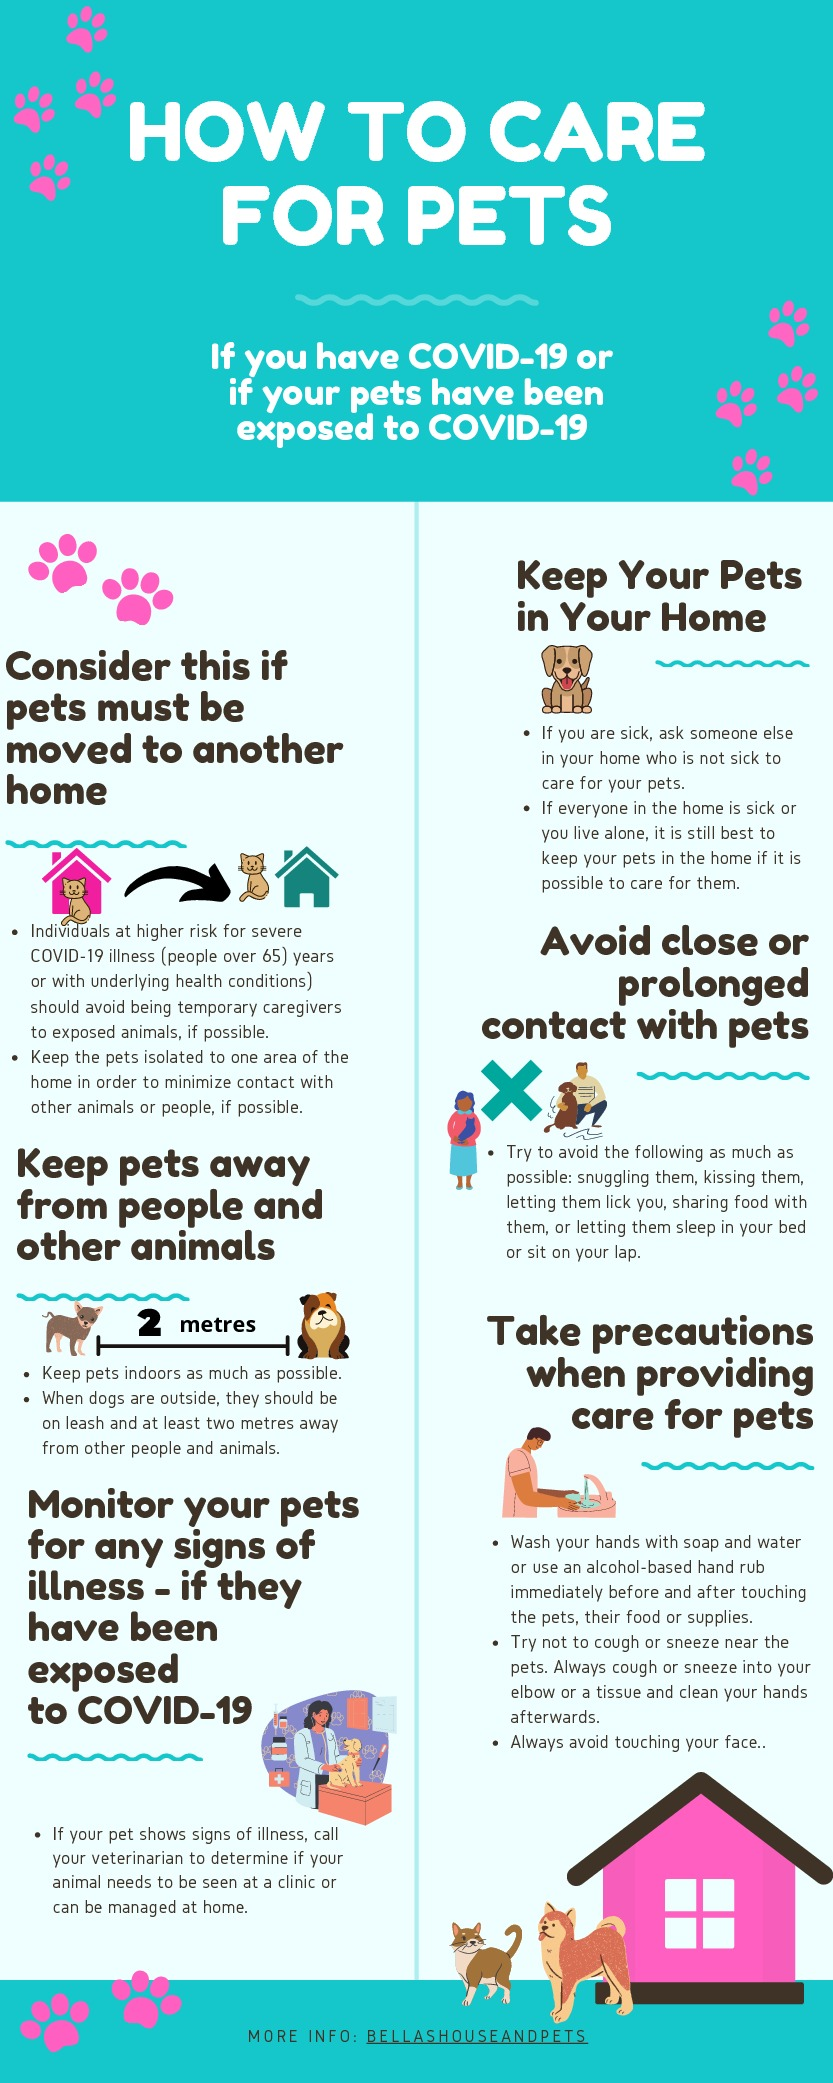 How to Care for Pets